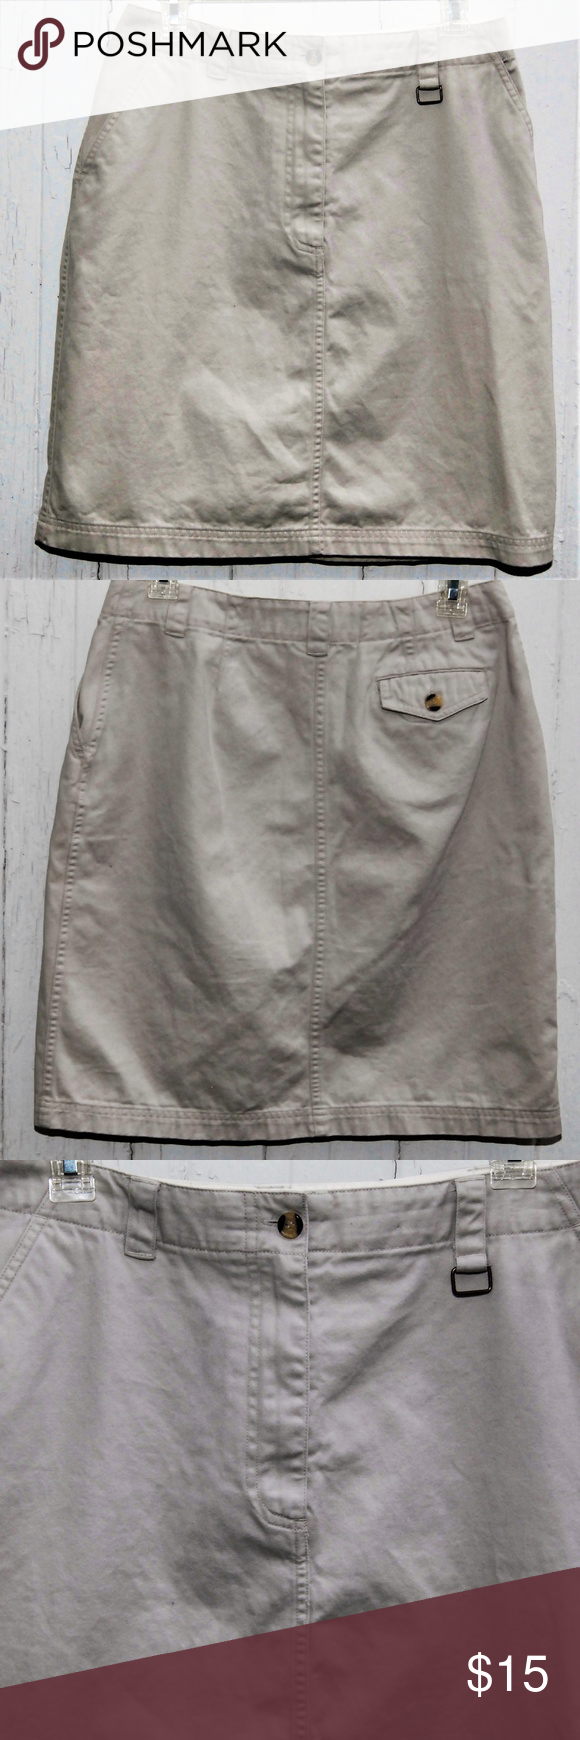 f9eec89f9 Christopher & Banks Khaki Skirt *Buy 1 Get 1 Free* For your consideration, Christopher  Banks Khaki Skirt with Front Pockets One Back Pocket and Belt Loops ...